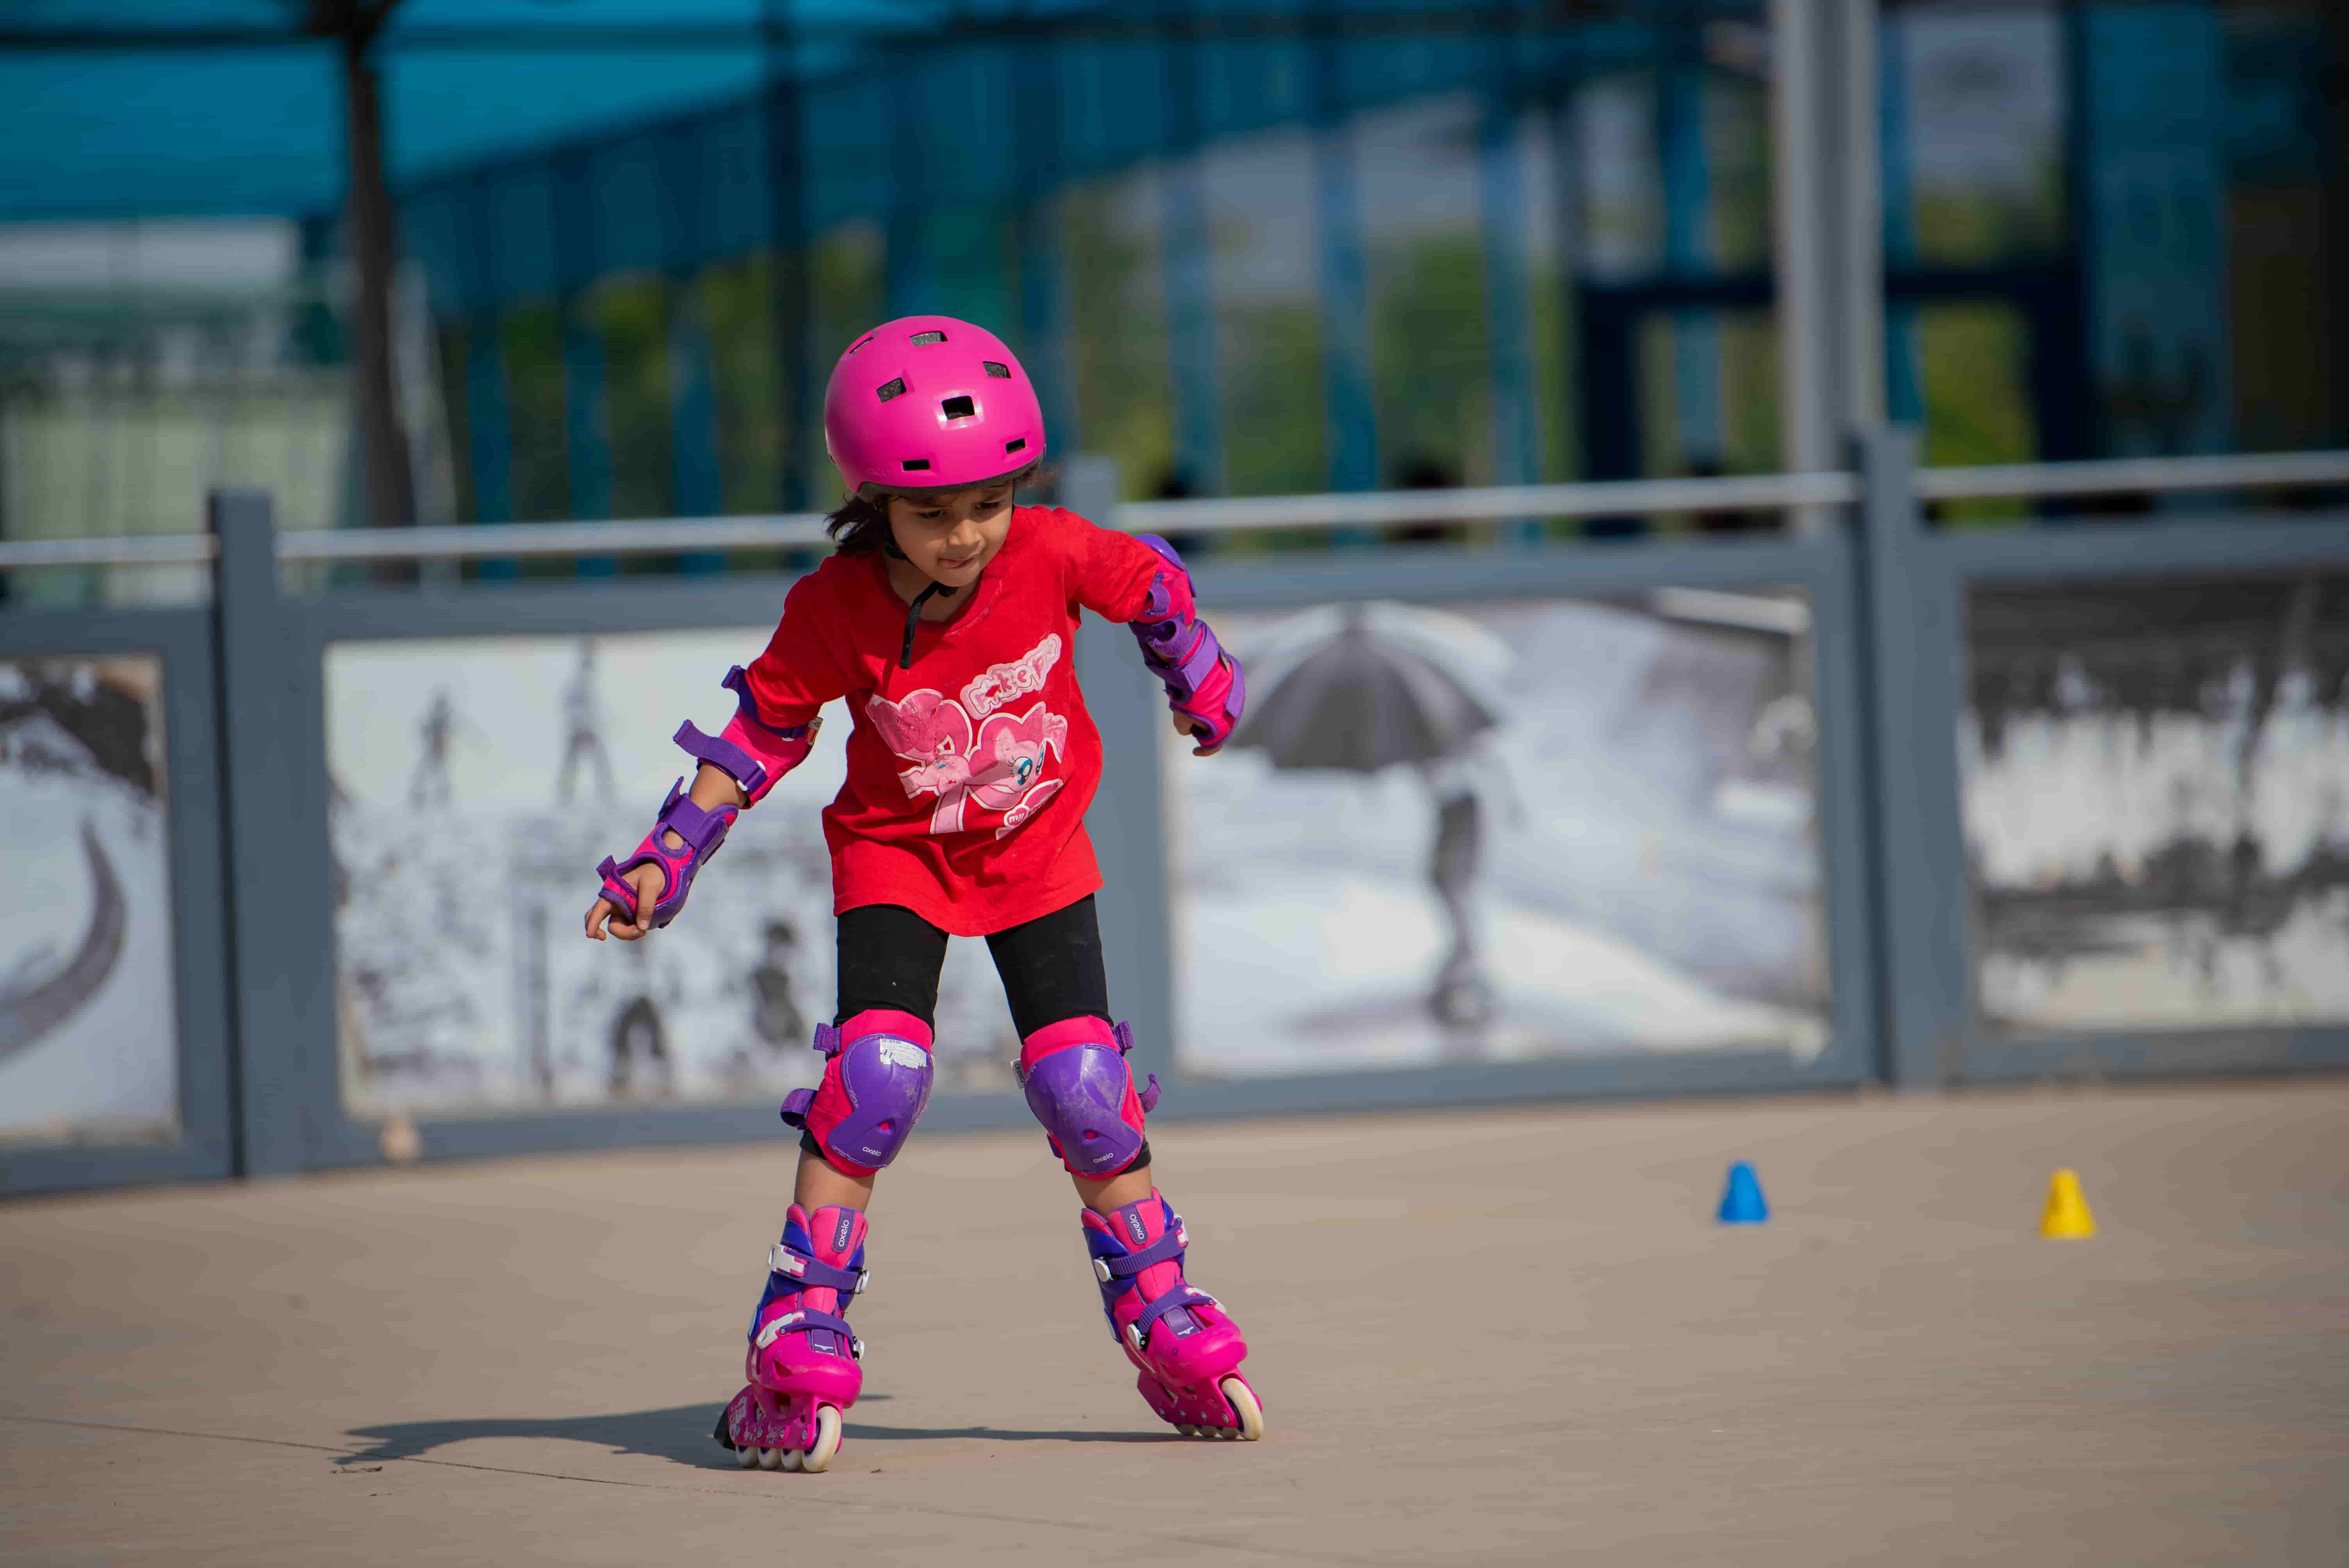 Upcoming Online Sports & Fitness Events for Kids